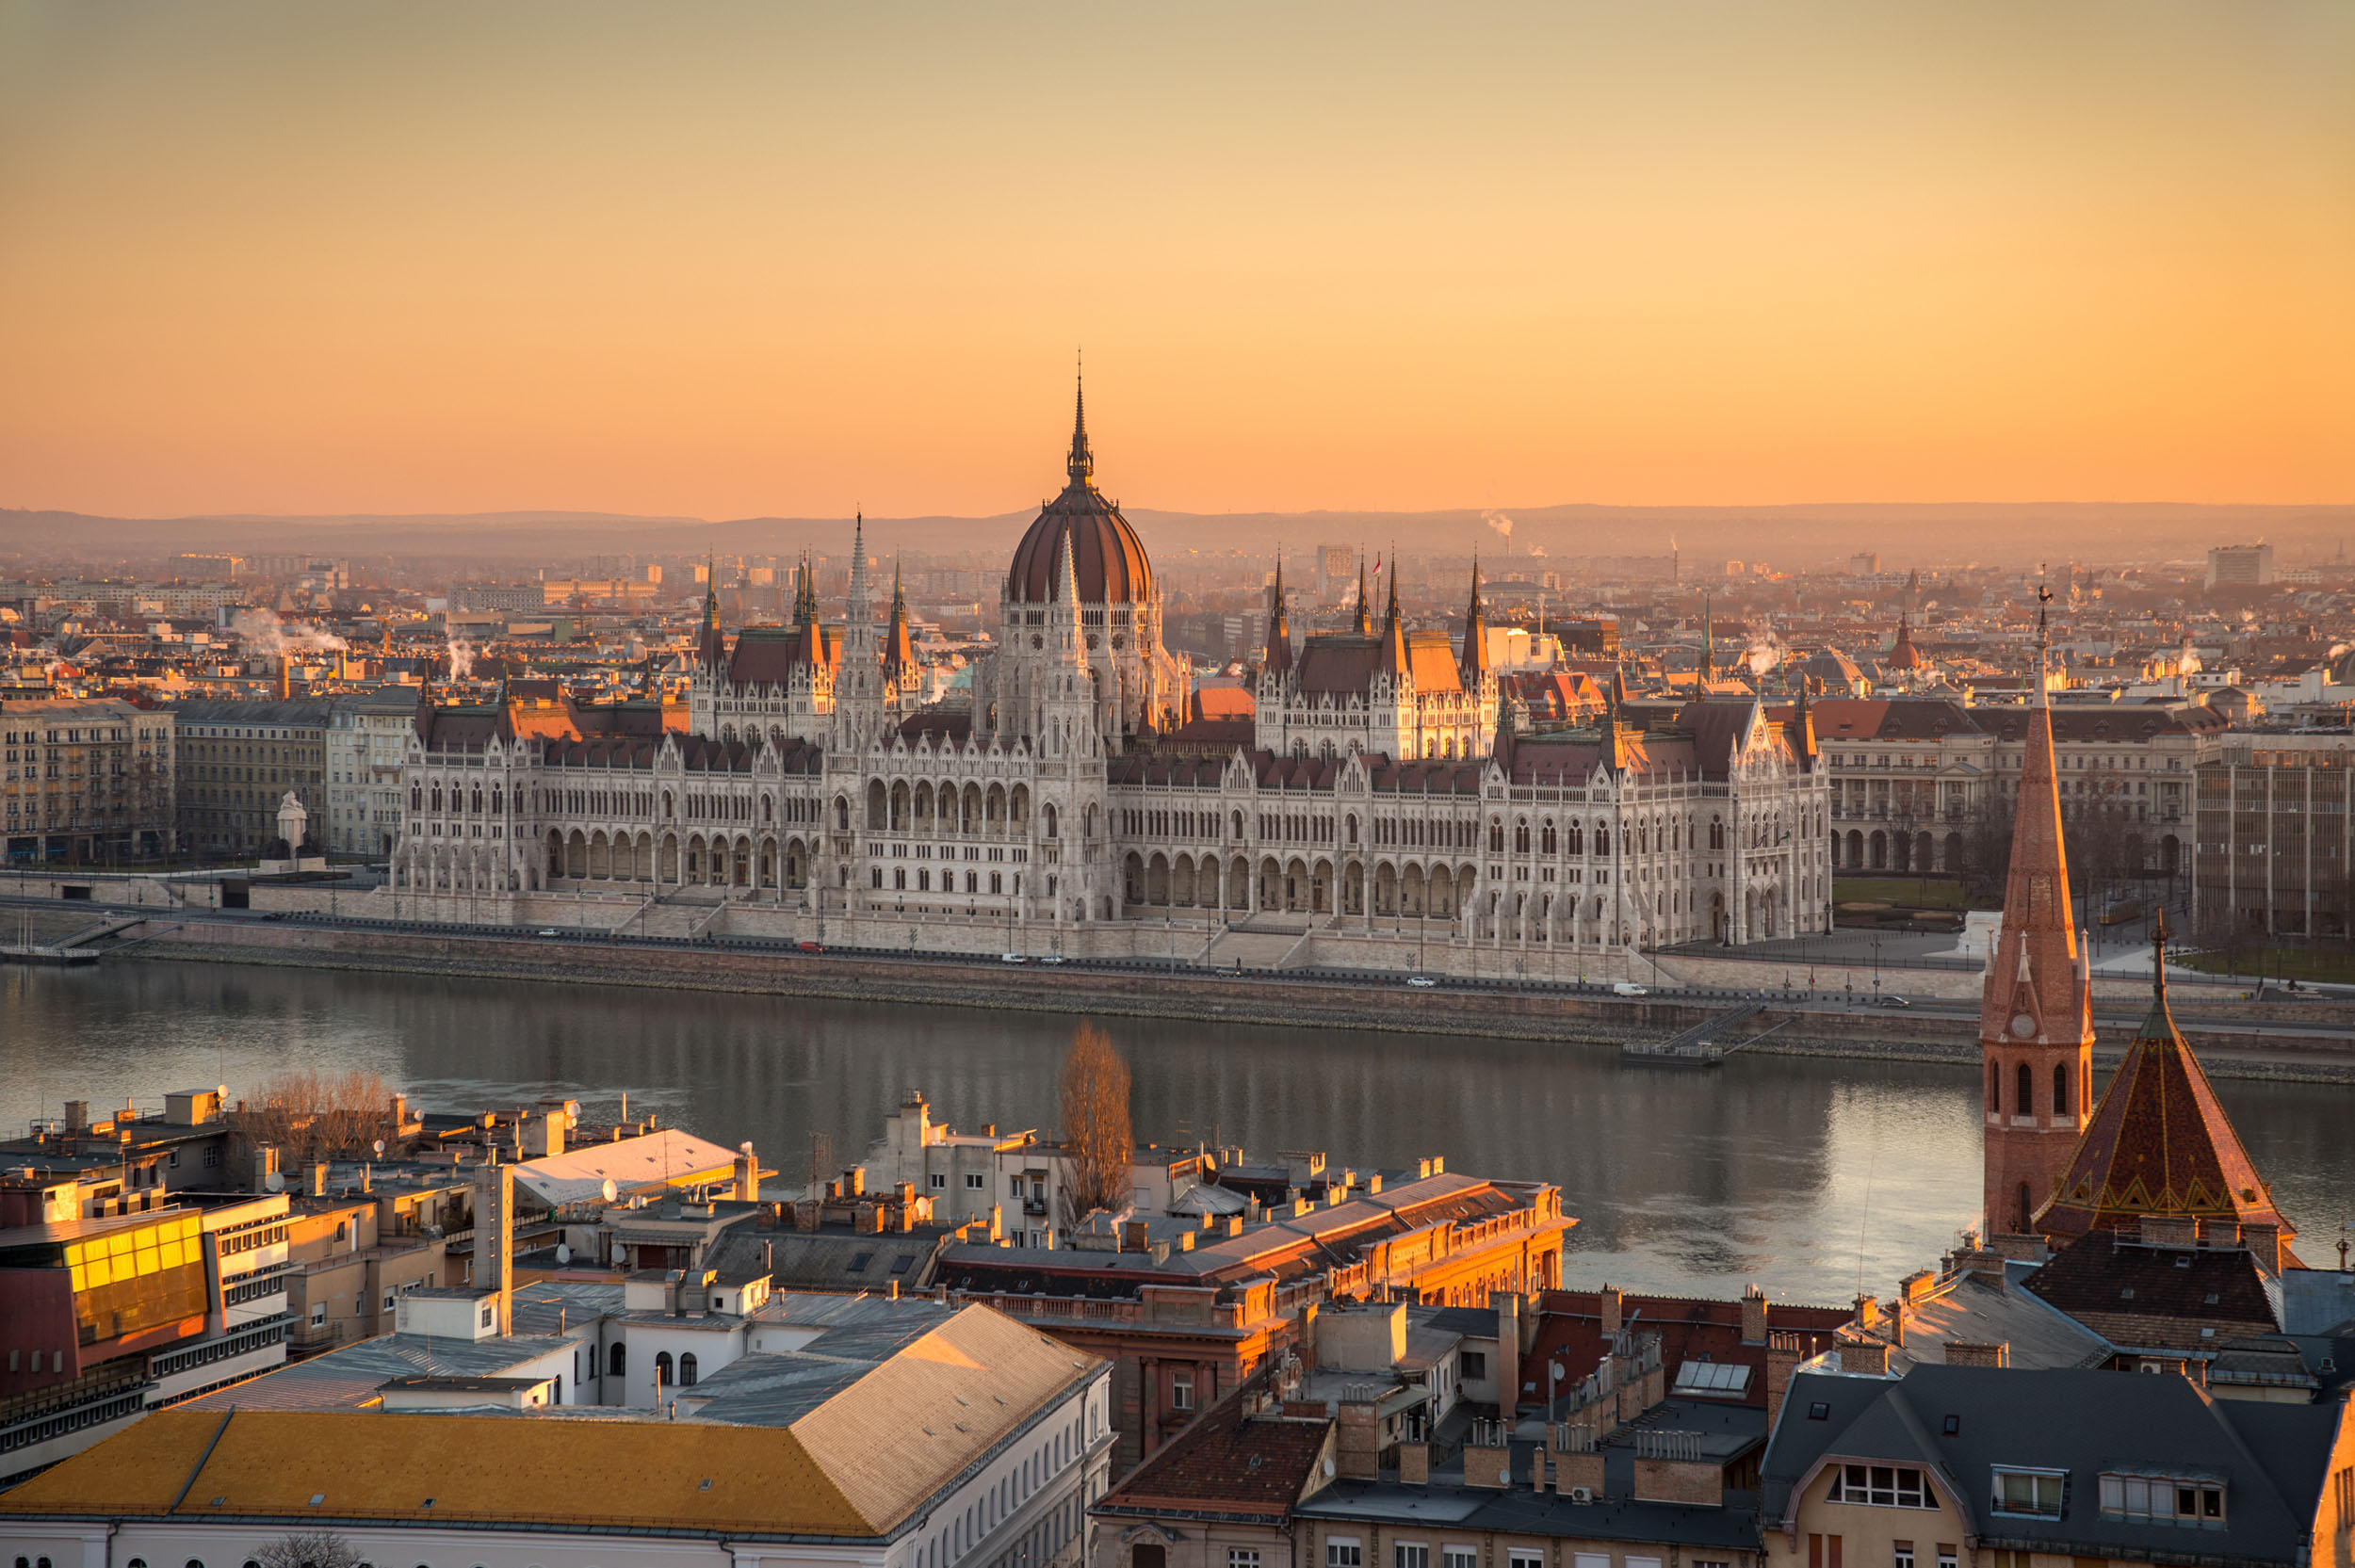 Hungarian Parliament Building at sunrise in Budapest, Hungary.